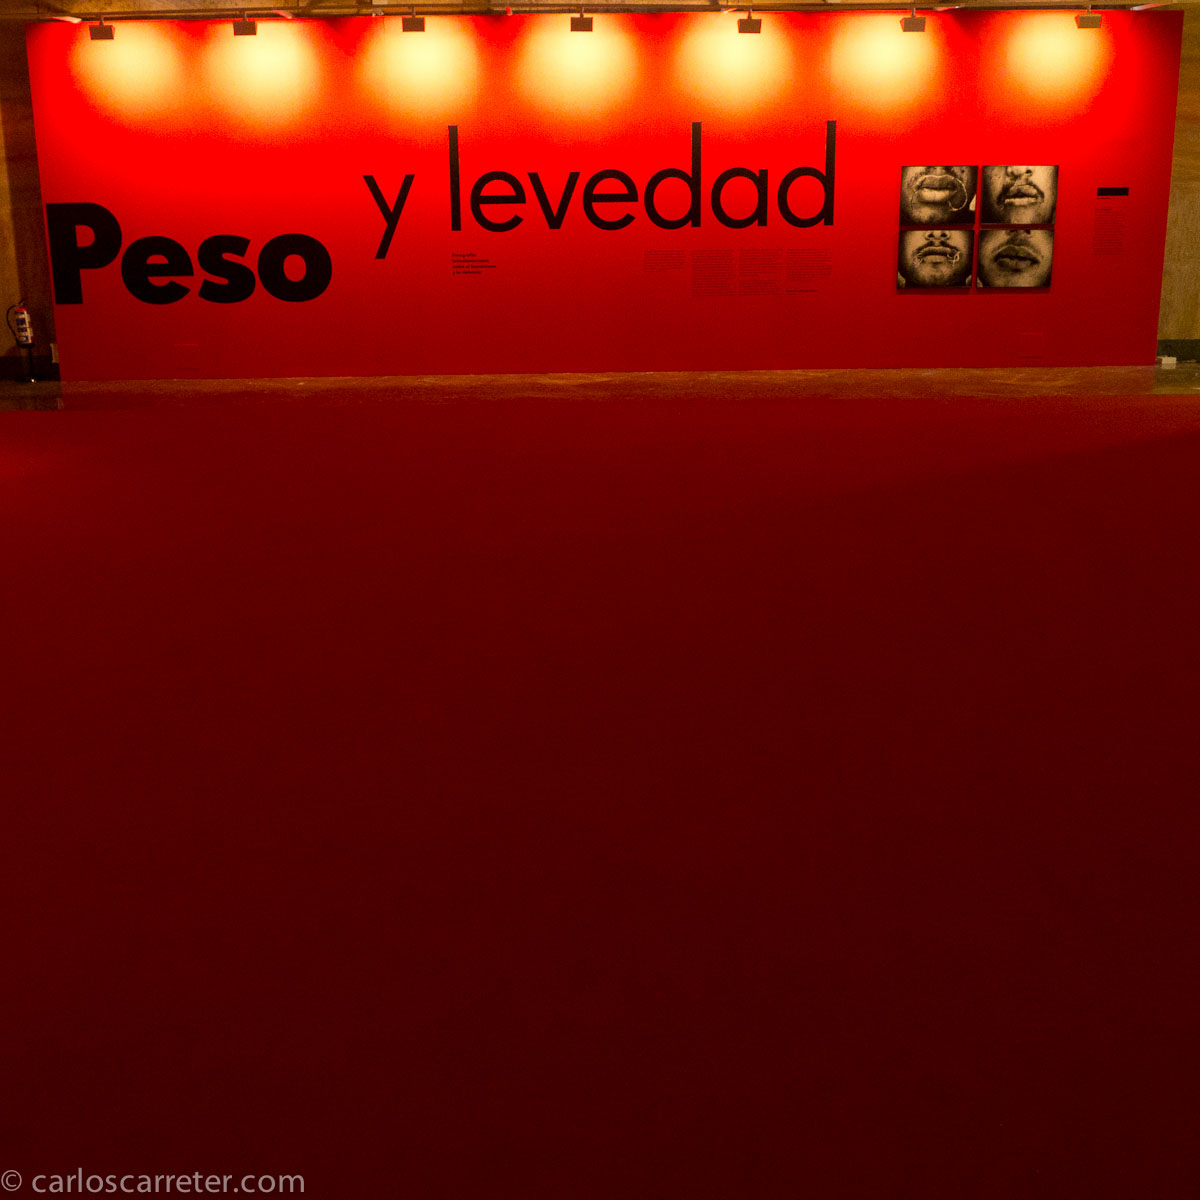 Peso y levedad (Instituto Cervantes)